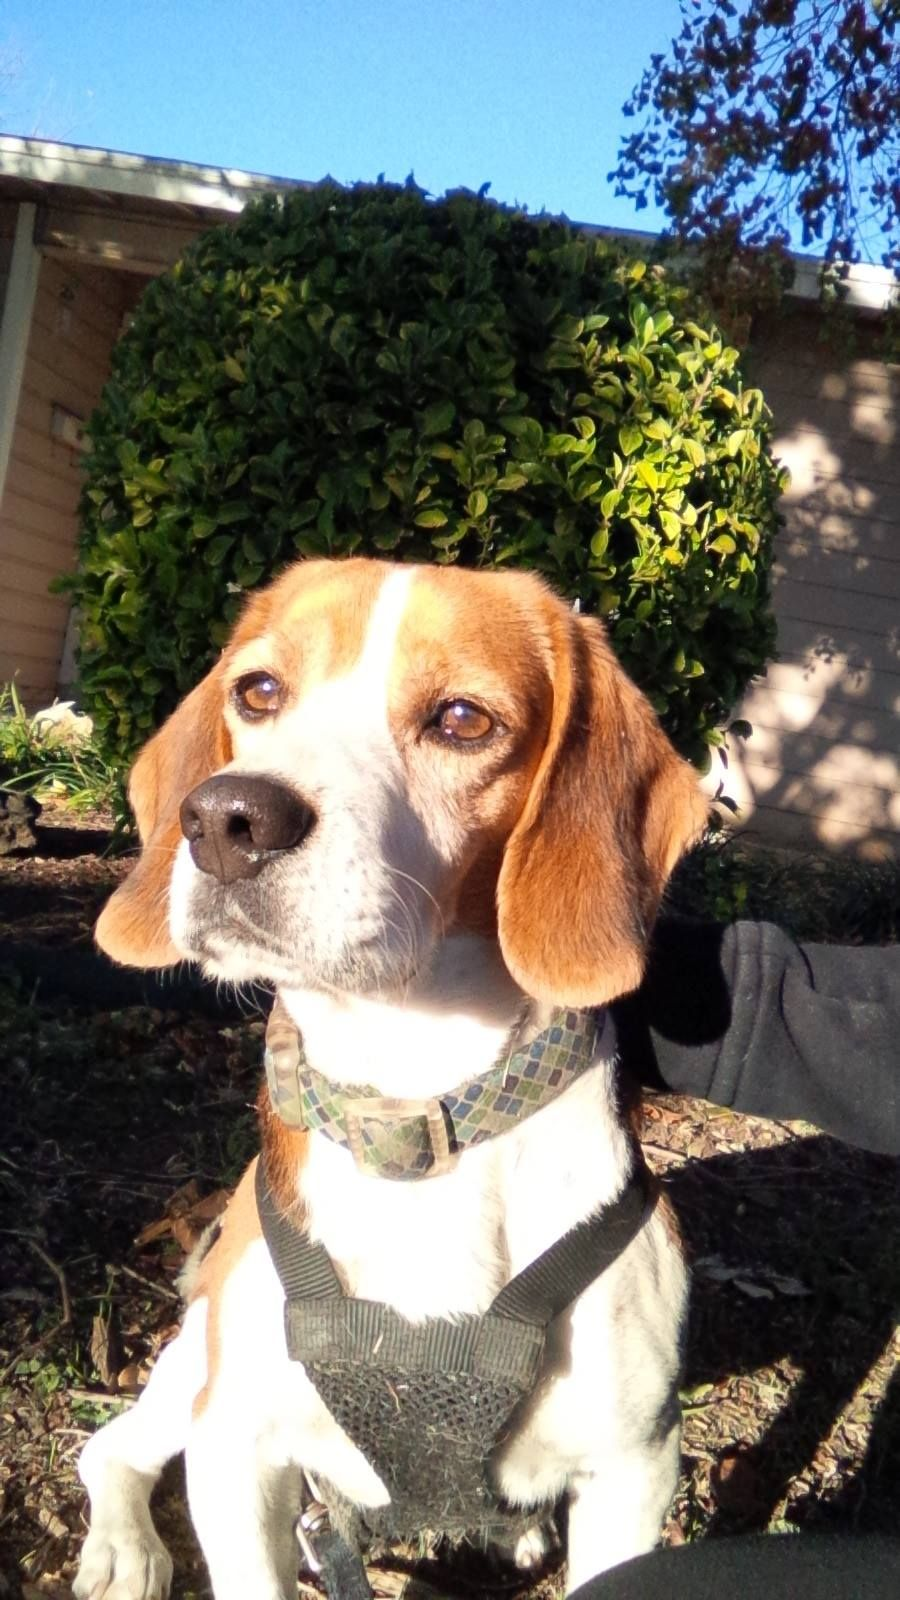 Sarah Jaimes Lost And Found Beagles December 29 2014 Missing